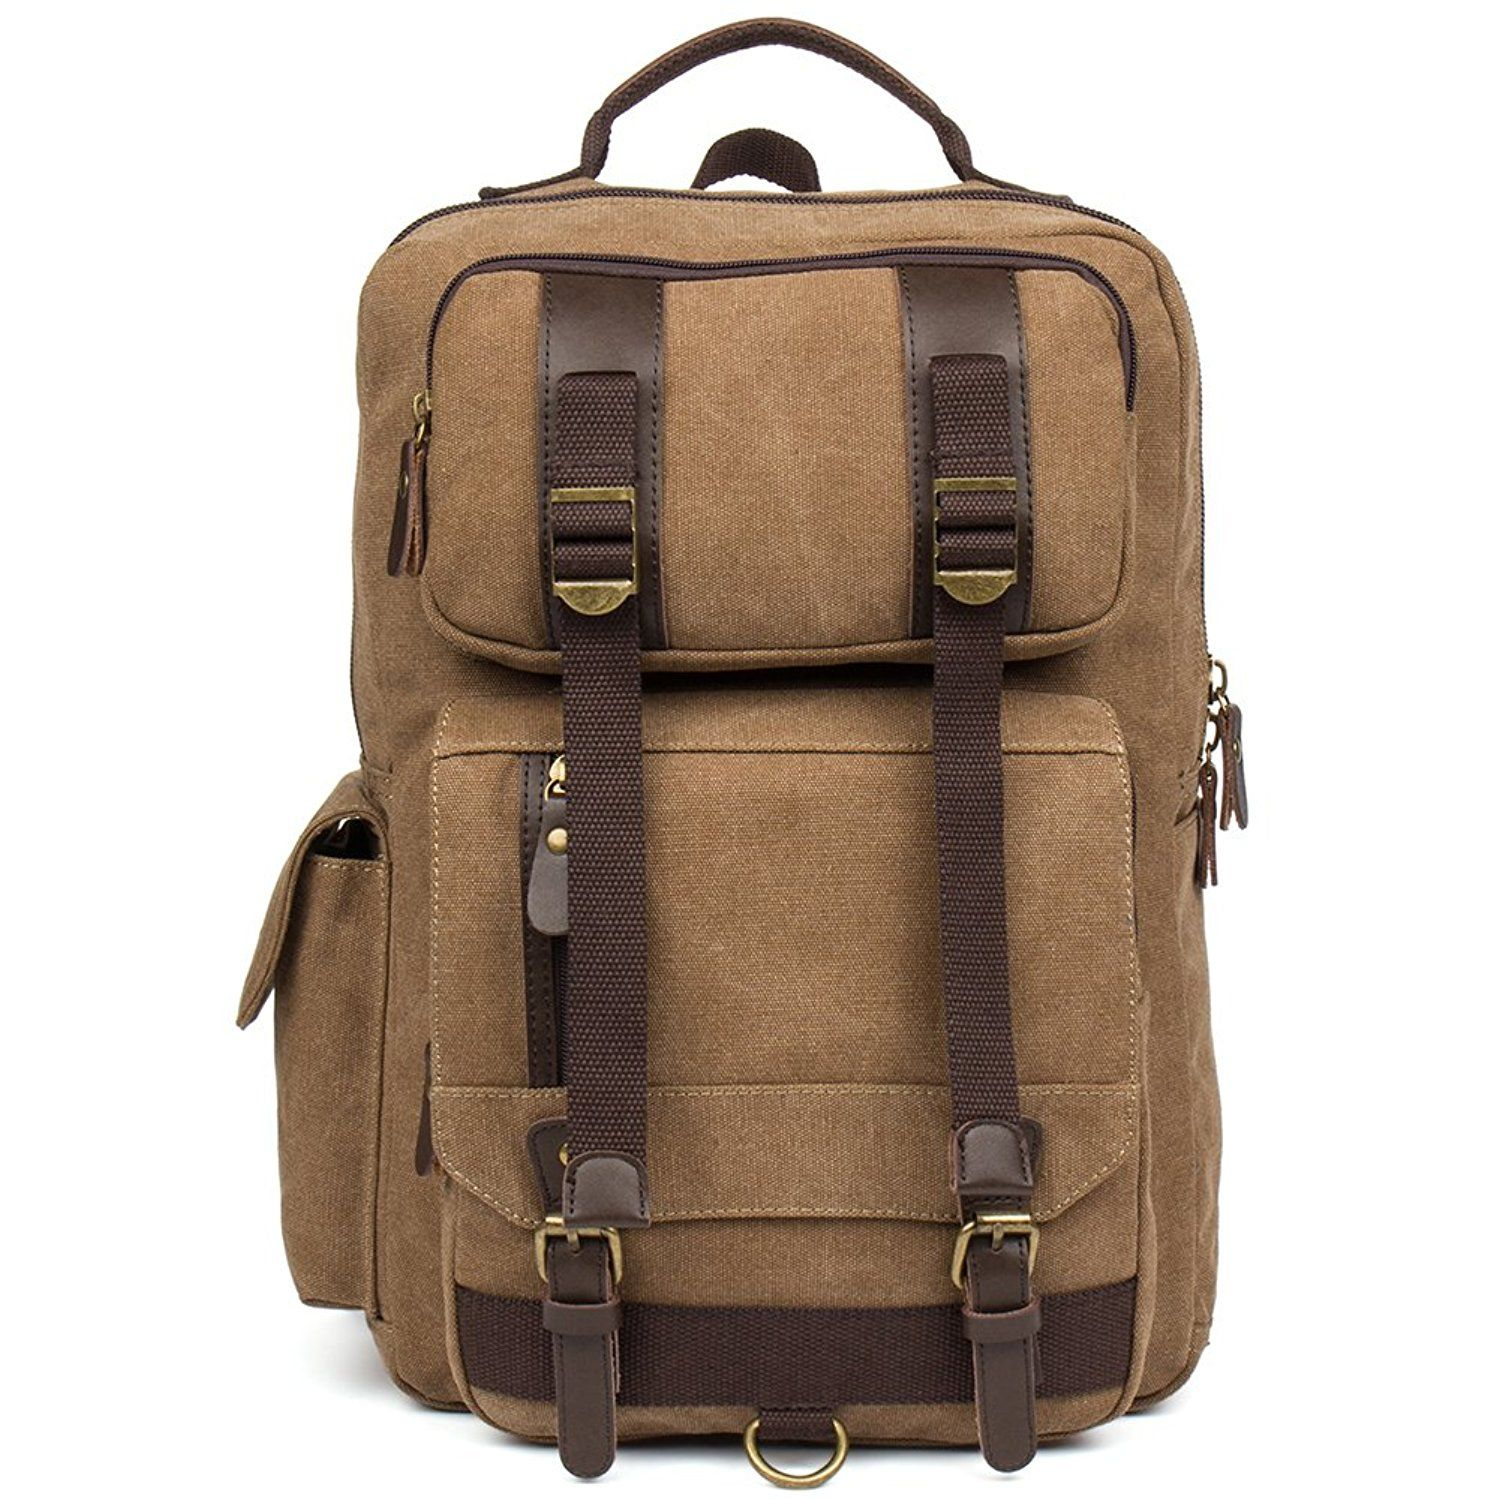 1280a6e2ad BOSTANTEN Laptop Canvas Backpack School Travel Camping Bag Gym Sports  Backpacks For Men    Want to know more